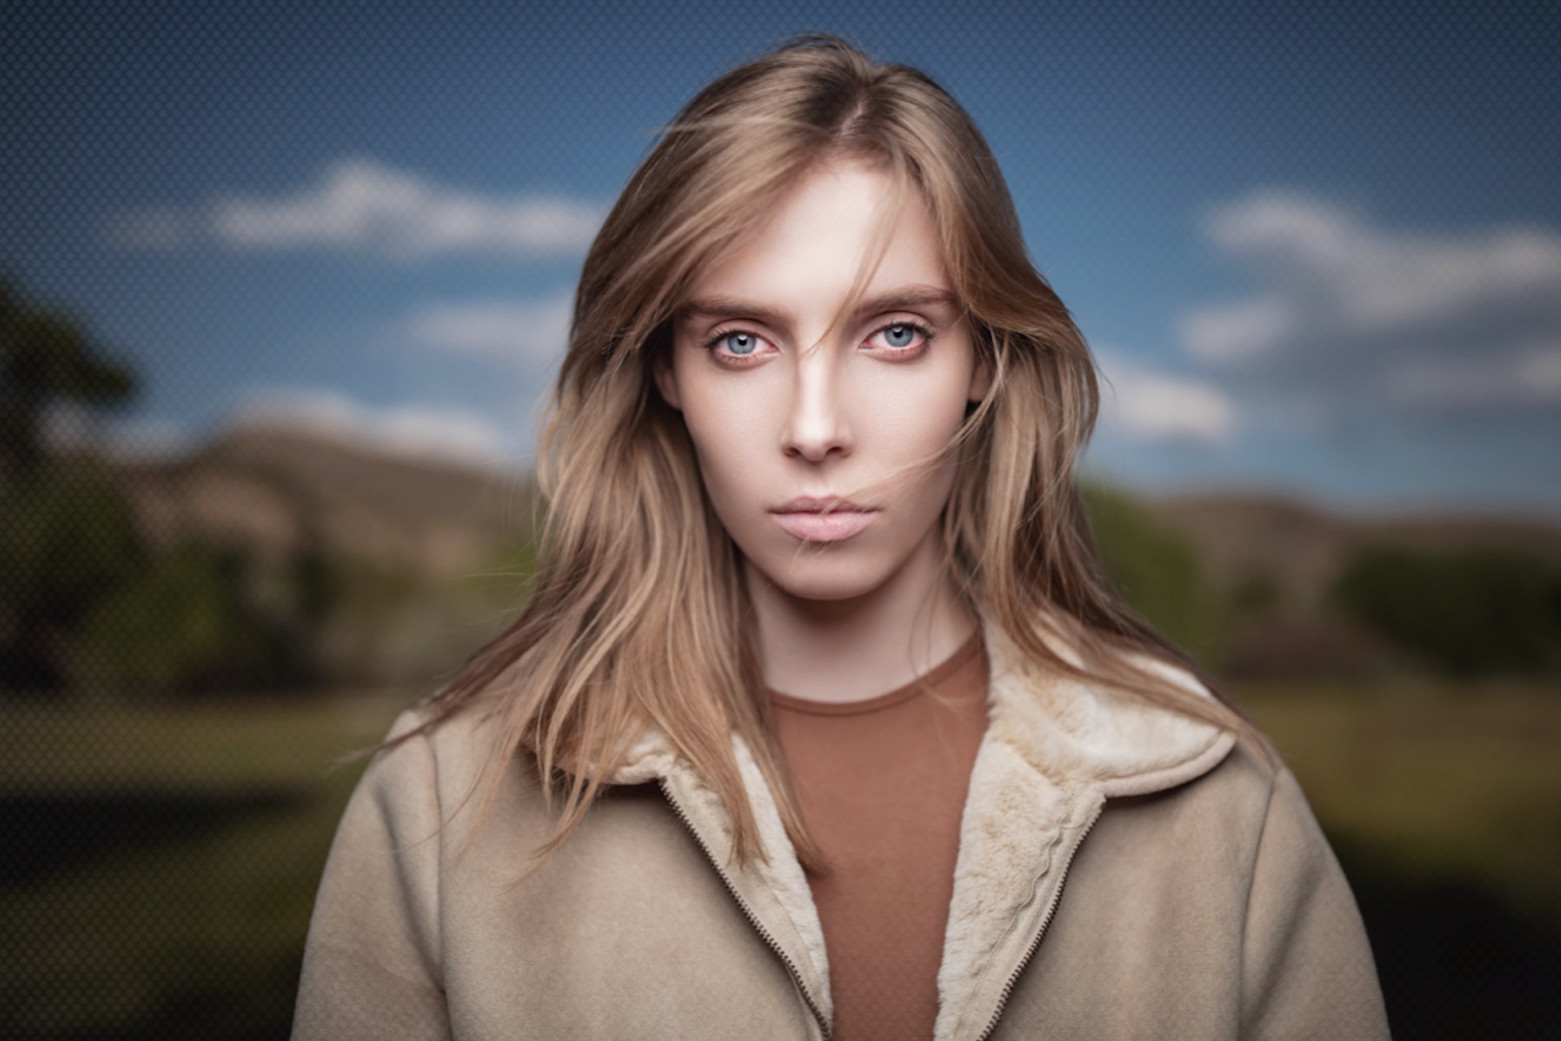 How to capture shallow depth-of-field portraits in bright sun